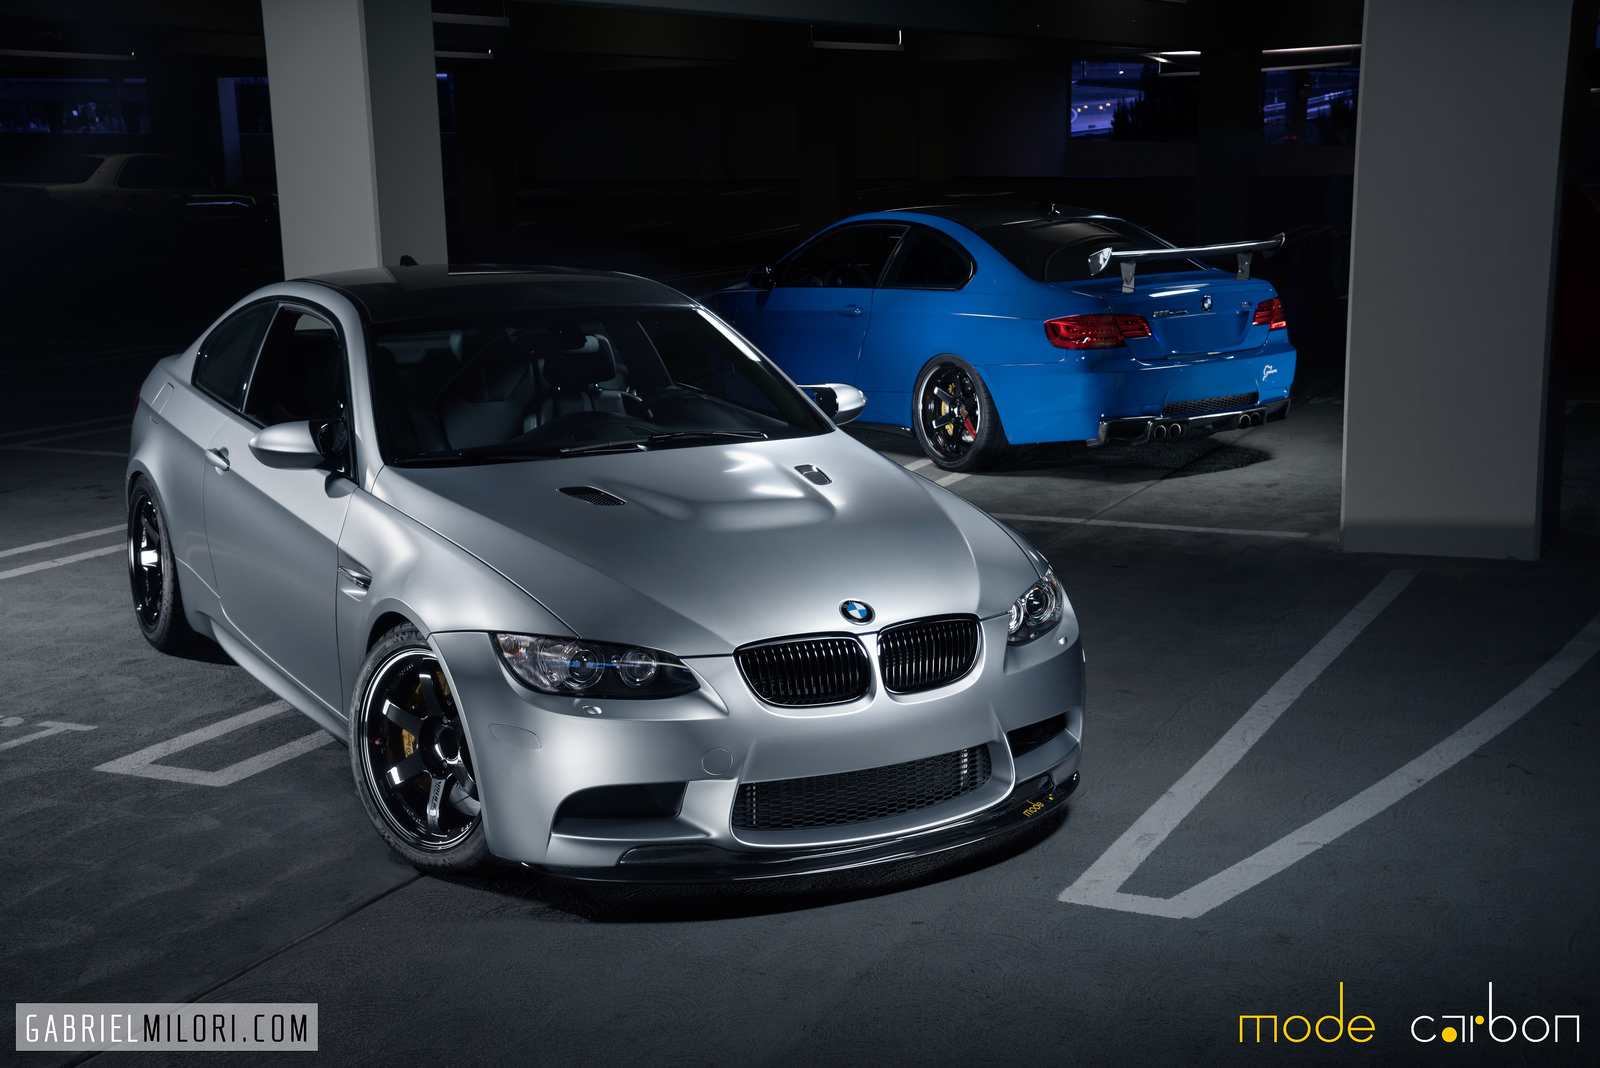 Santorini Blue Bmw E92 M3 Is Back And This Time It Brought A